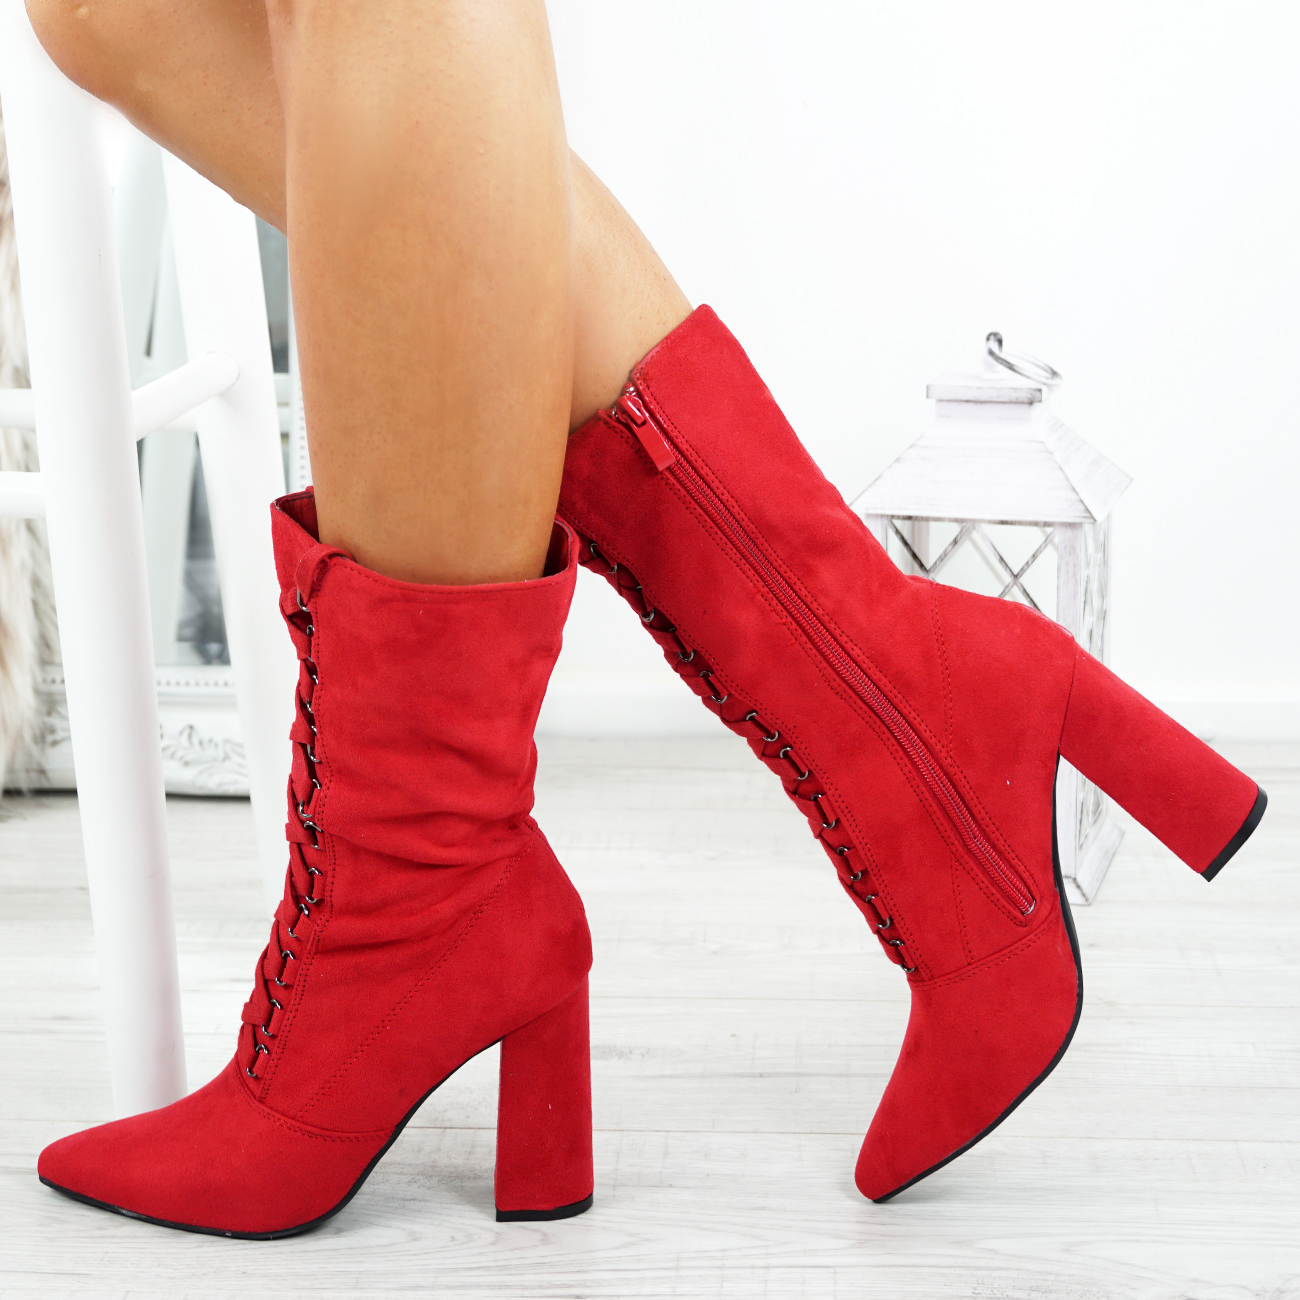 LADIES-WOMENS-HIGH-TOP-ANKLE-BOOTS-SIDE-ZIP-LACE-BLOCK-HEEL-POINTED-TOE-SHOES thumbnail 17